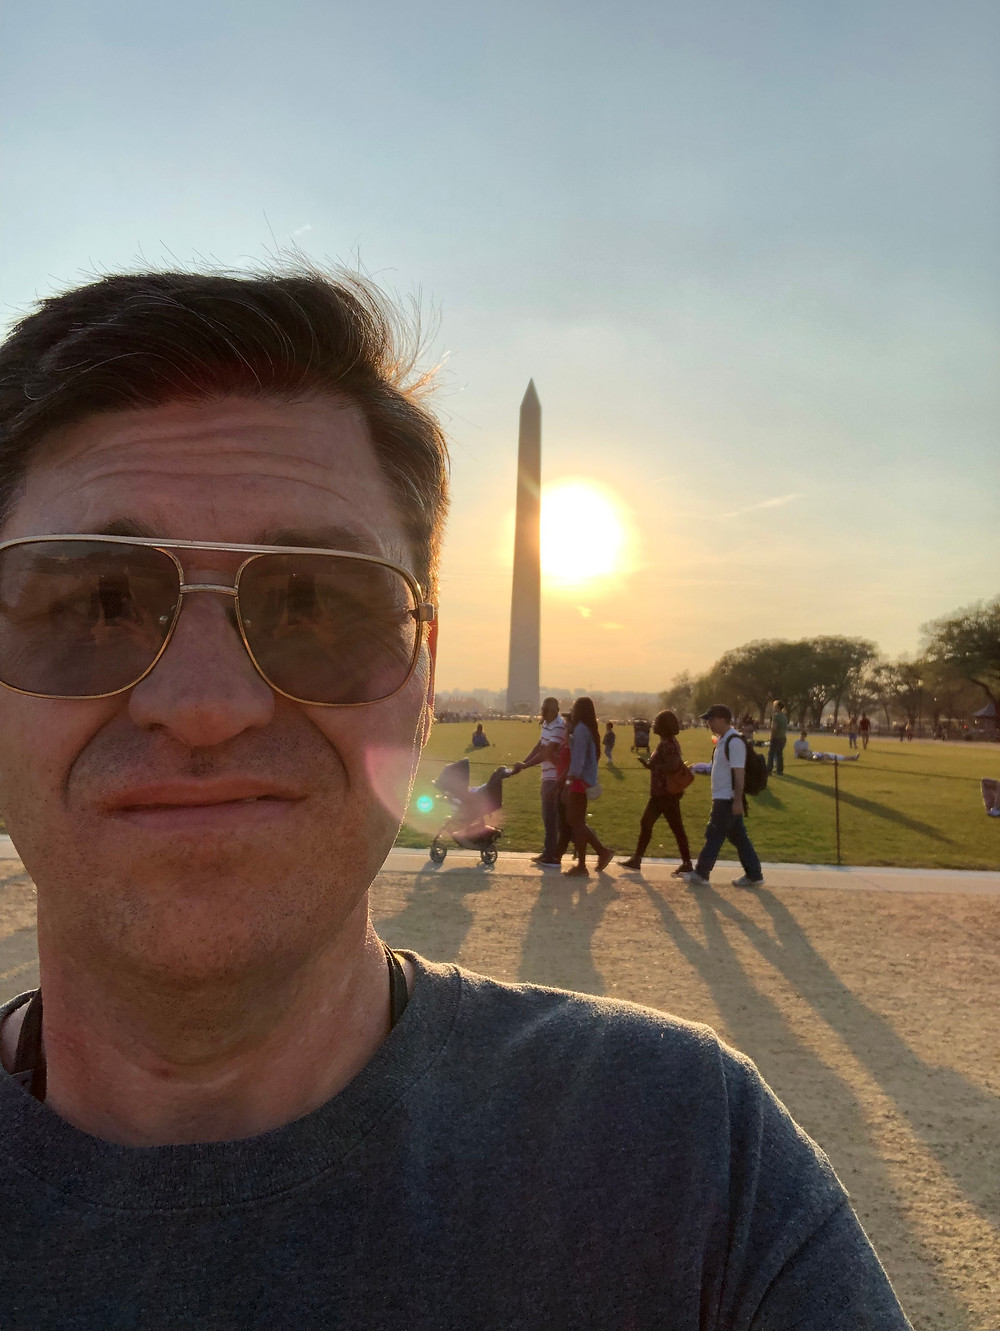 Selfie of Mike, wearing aviators with the Washington Monument and the sun setting behind him